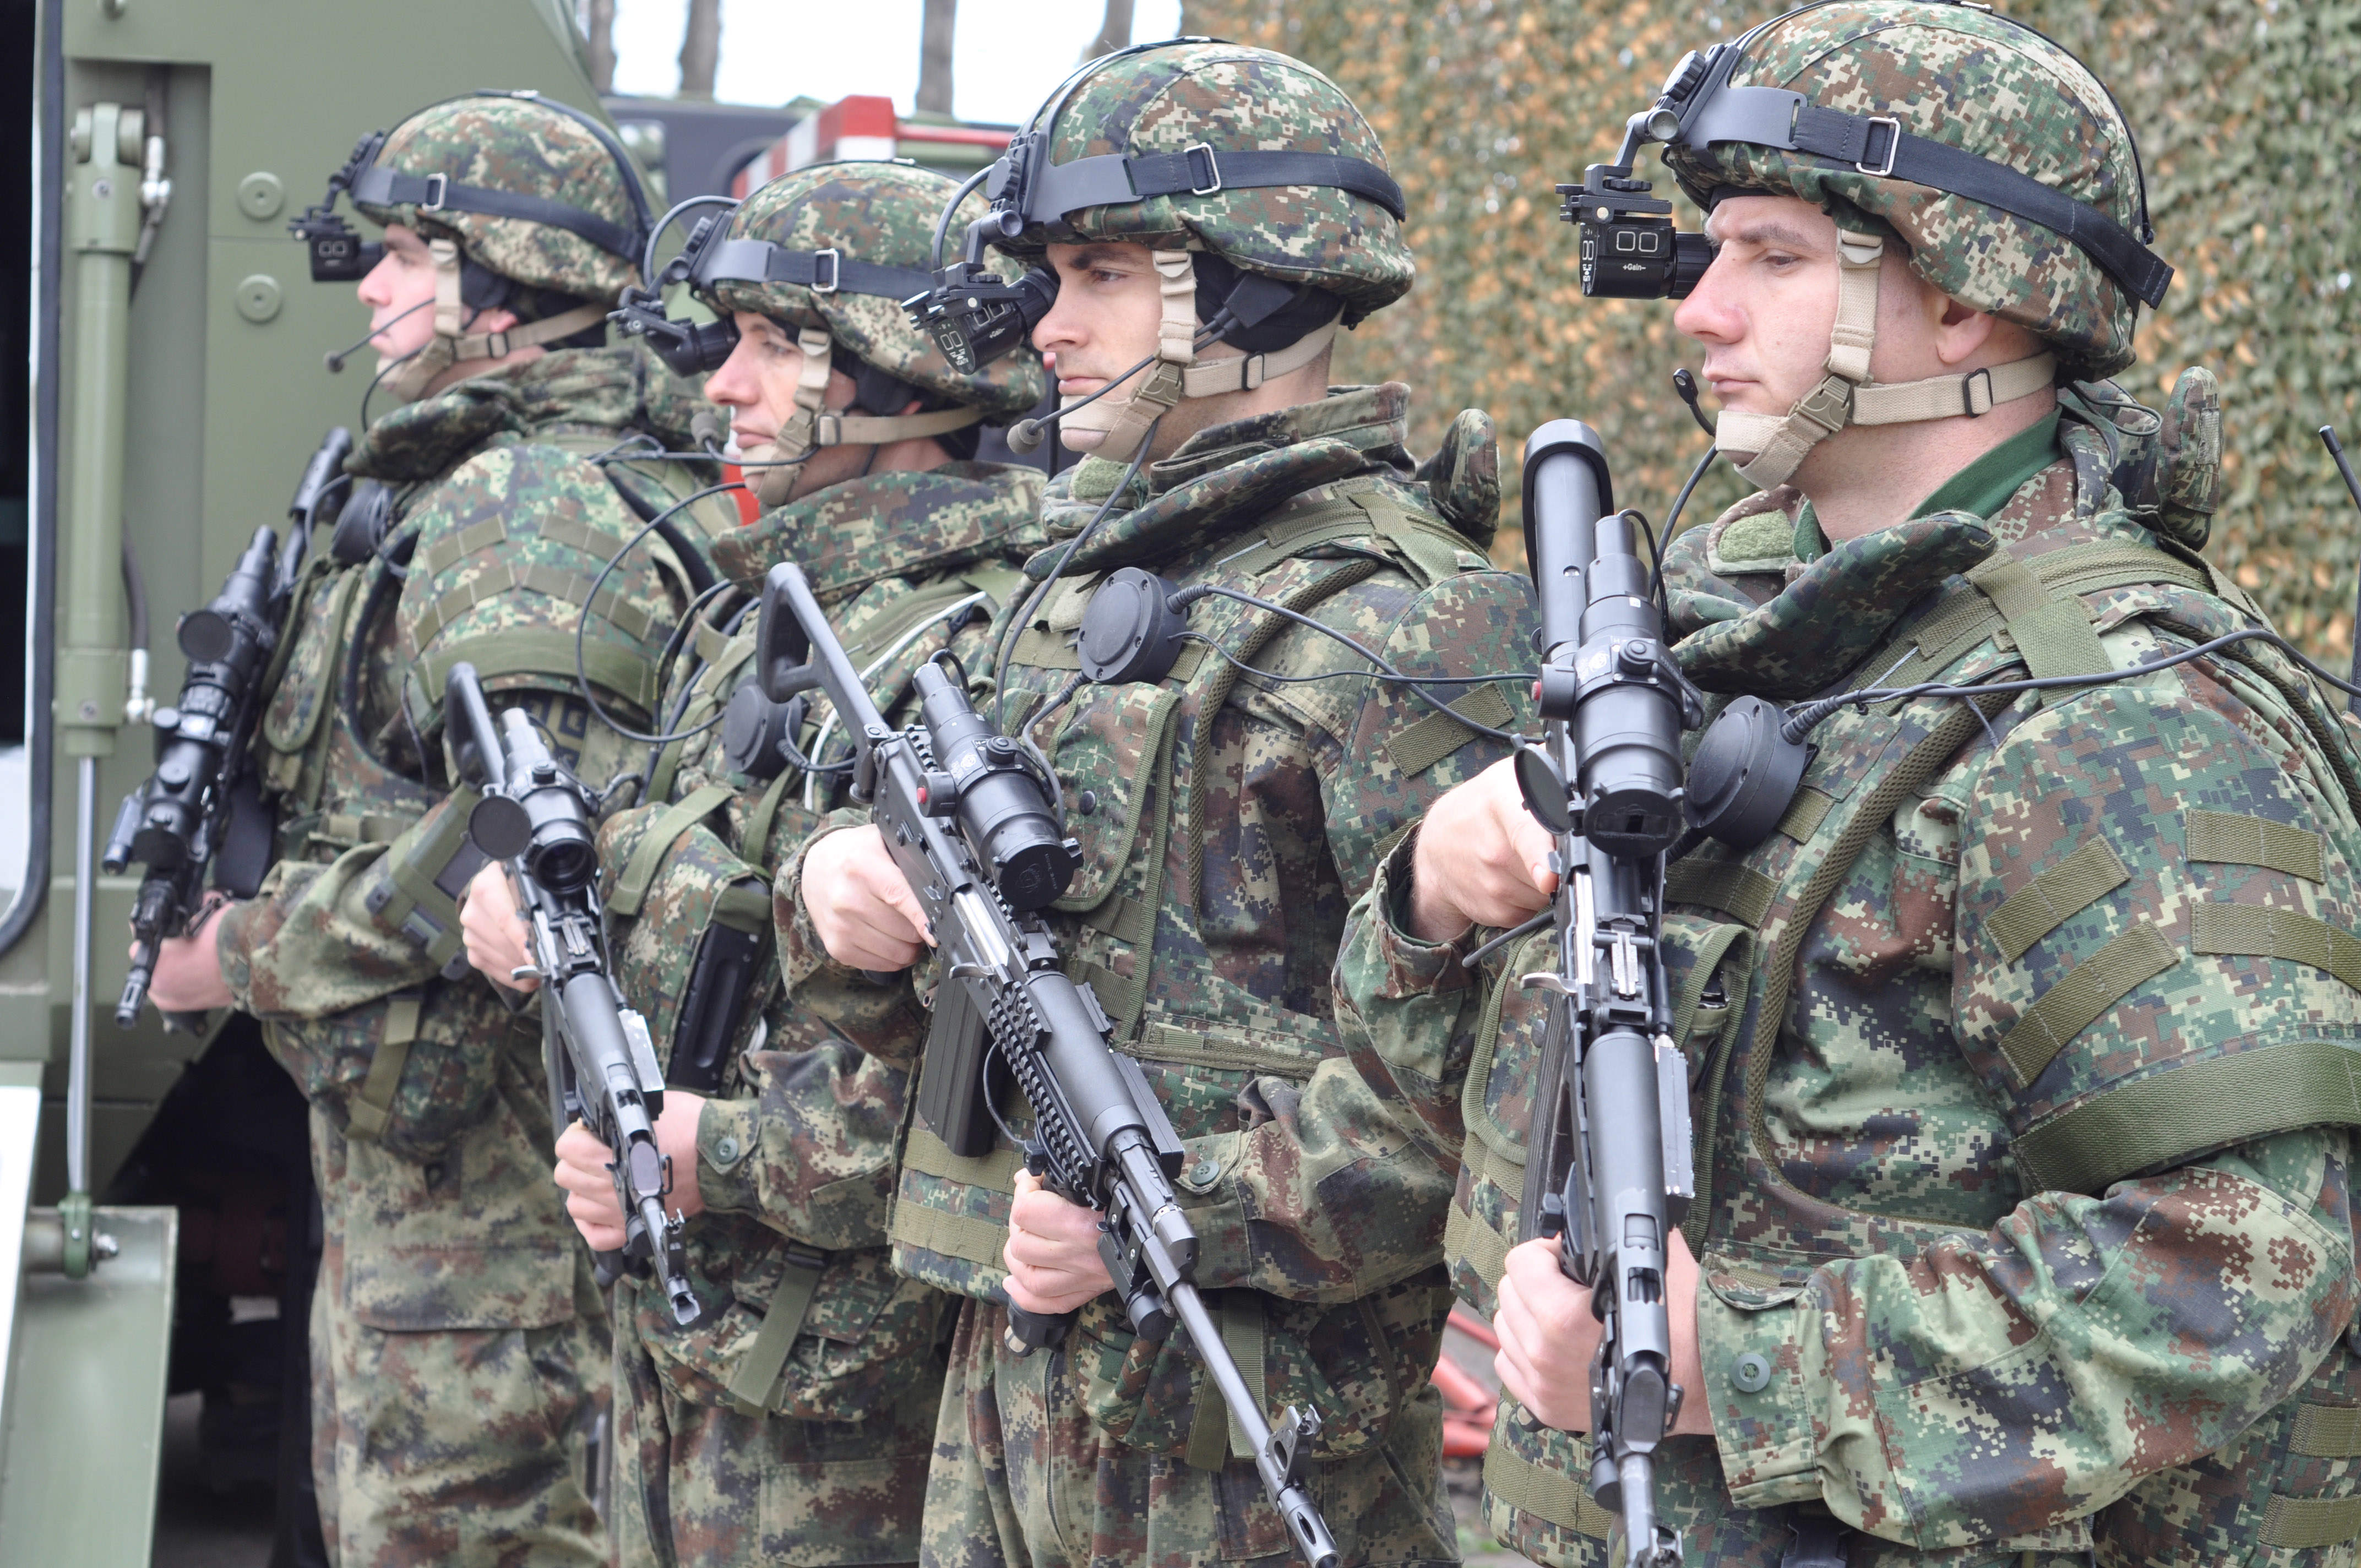 Four soldiers holding guns